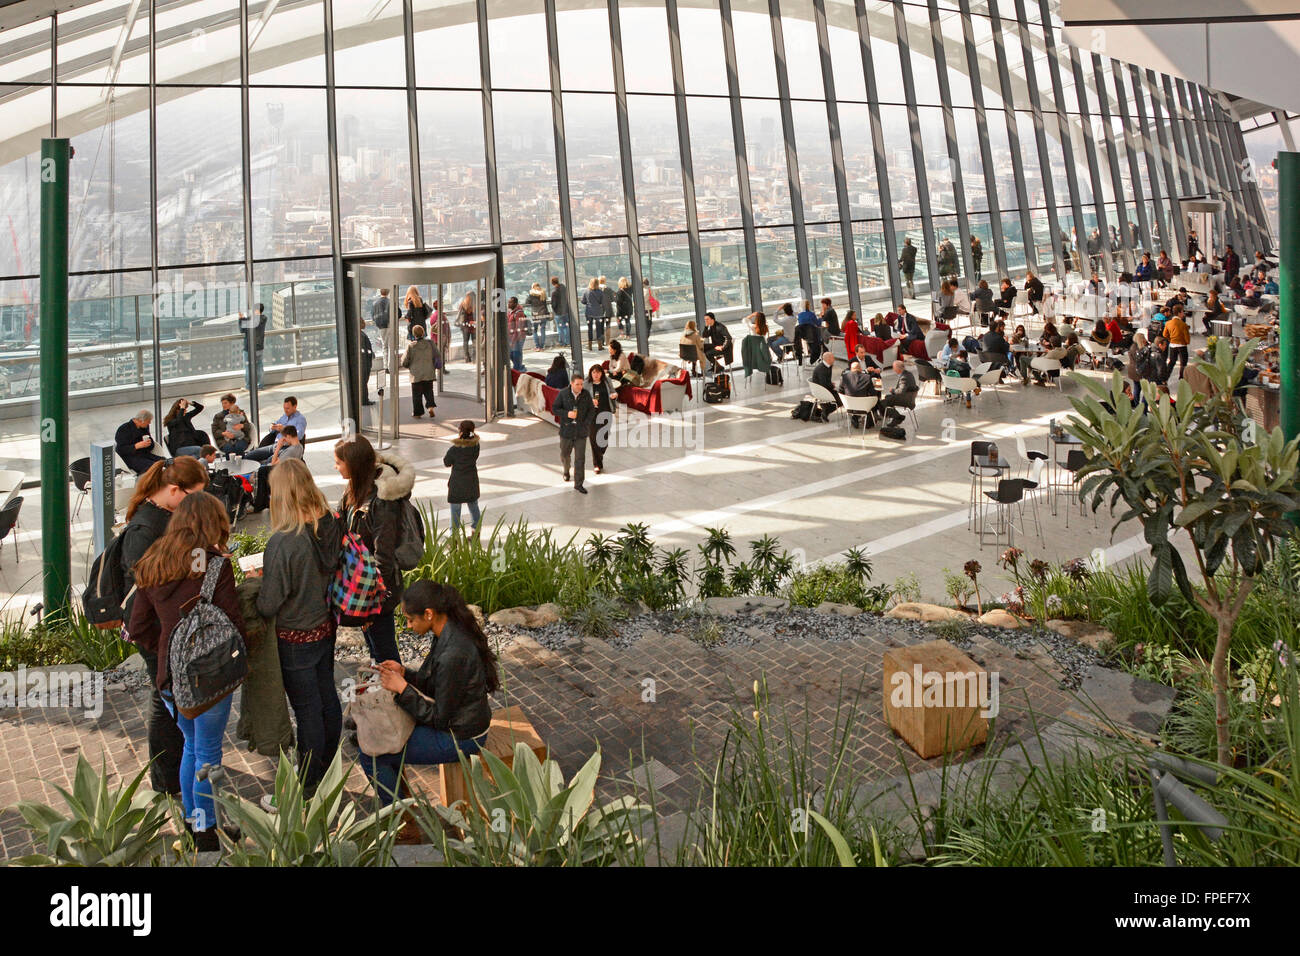 Visitors & tourists a  public Sky Garden at top of landmark Walkie Talkie skyscraper office building at 20 Fenchurch - Stock Image